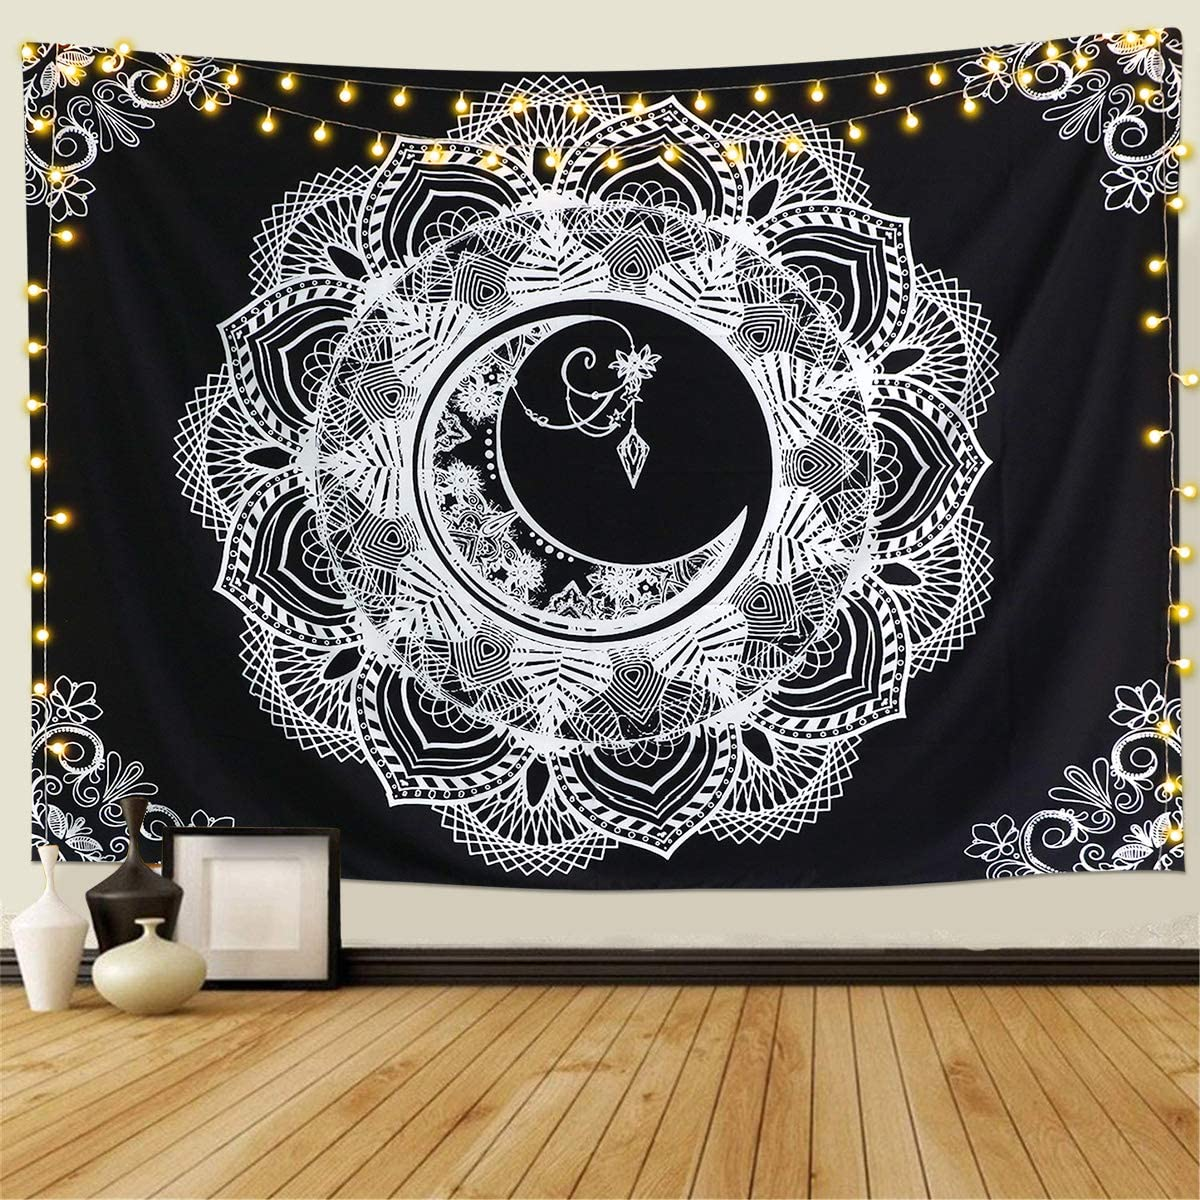 Sale Cheap sale special price KHOYIME Mandala Tapestry Black and Hippie Tapestries White Flowe